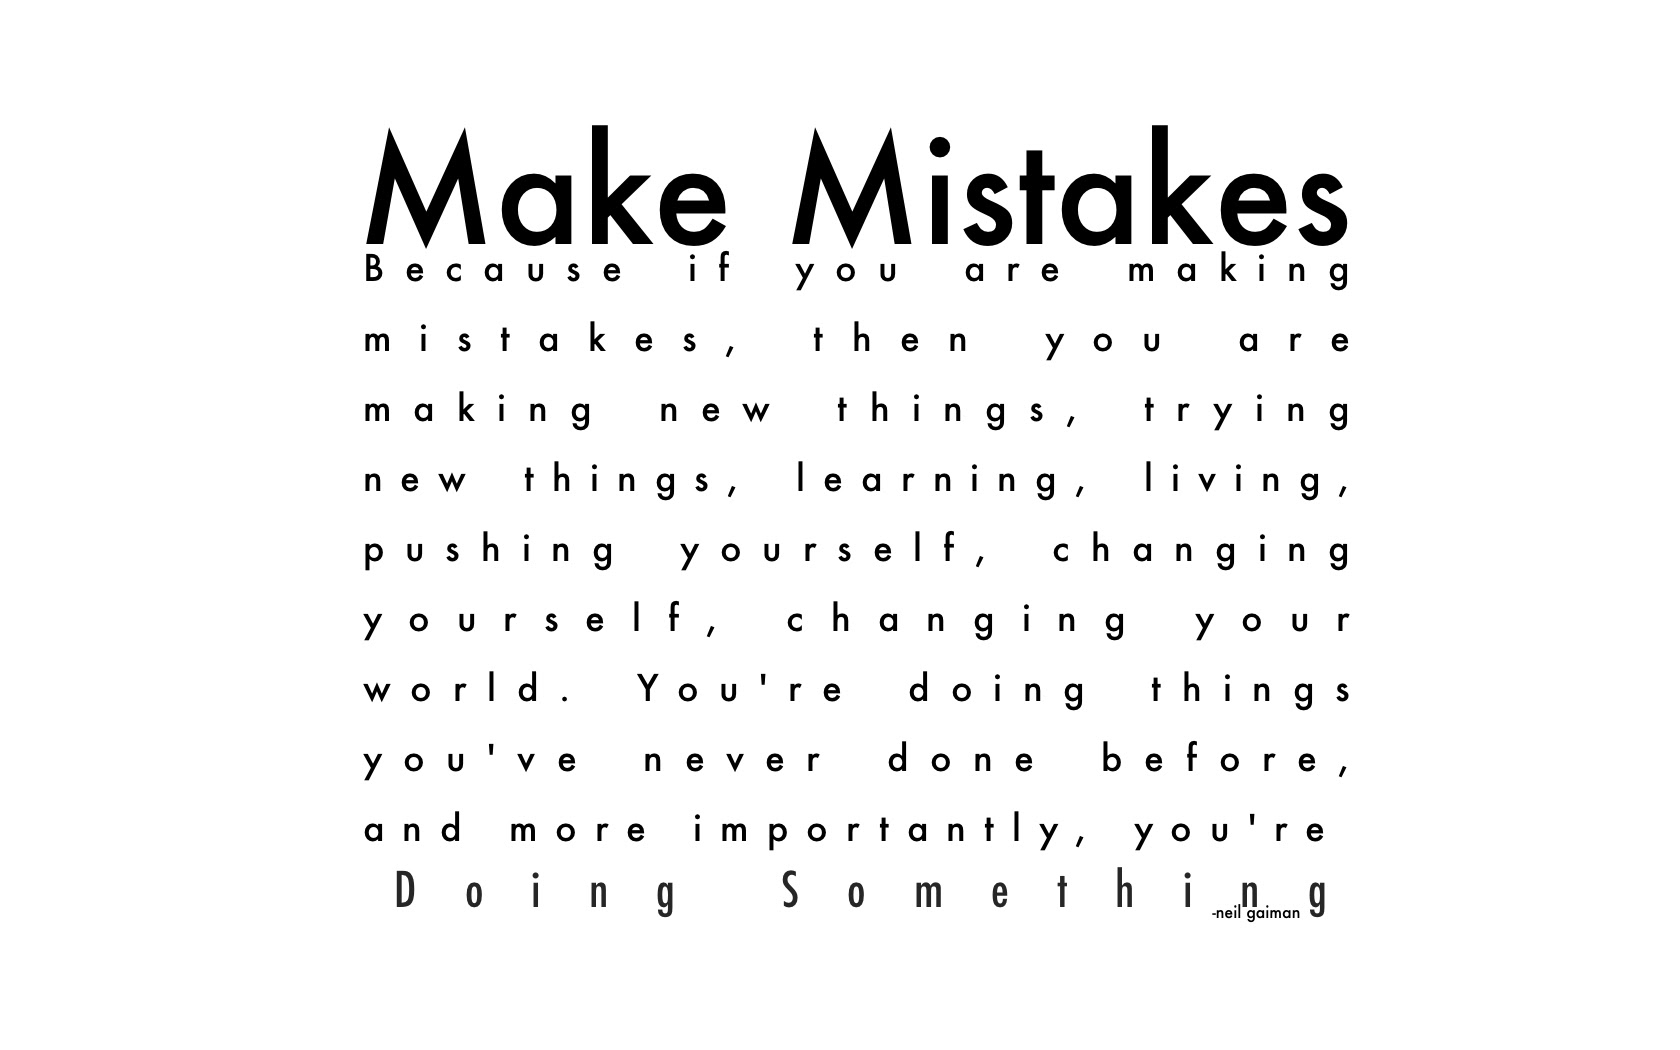 Making Mistakes Because If You Are Making Mistakes Then You Are